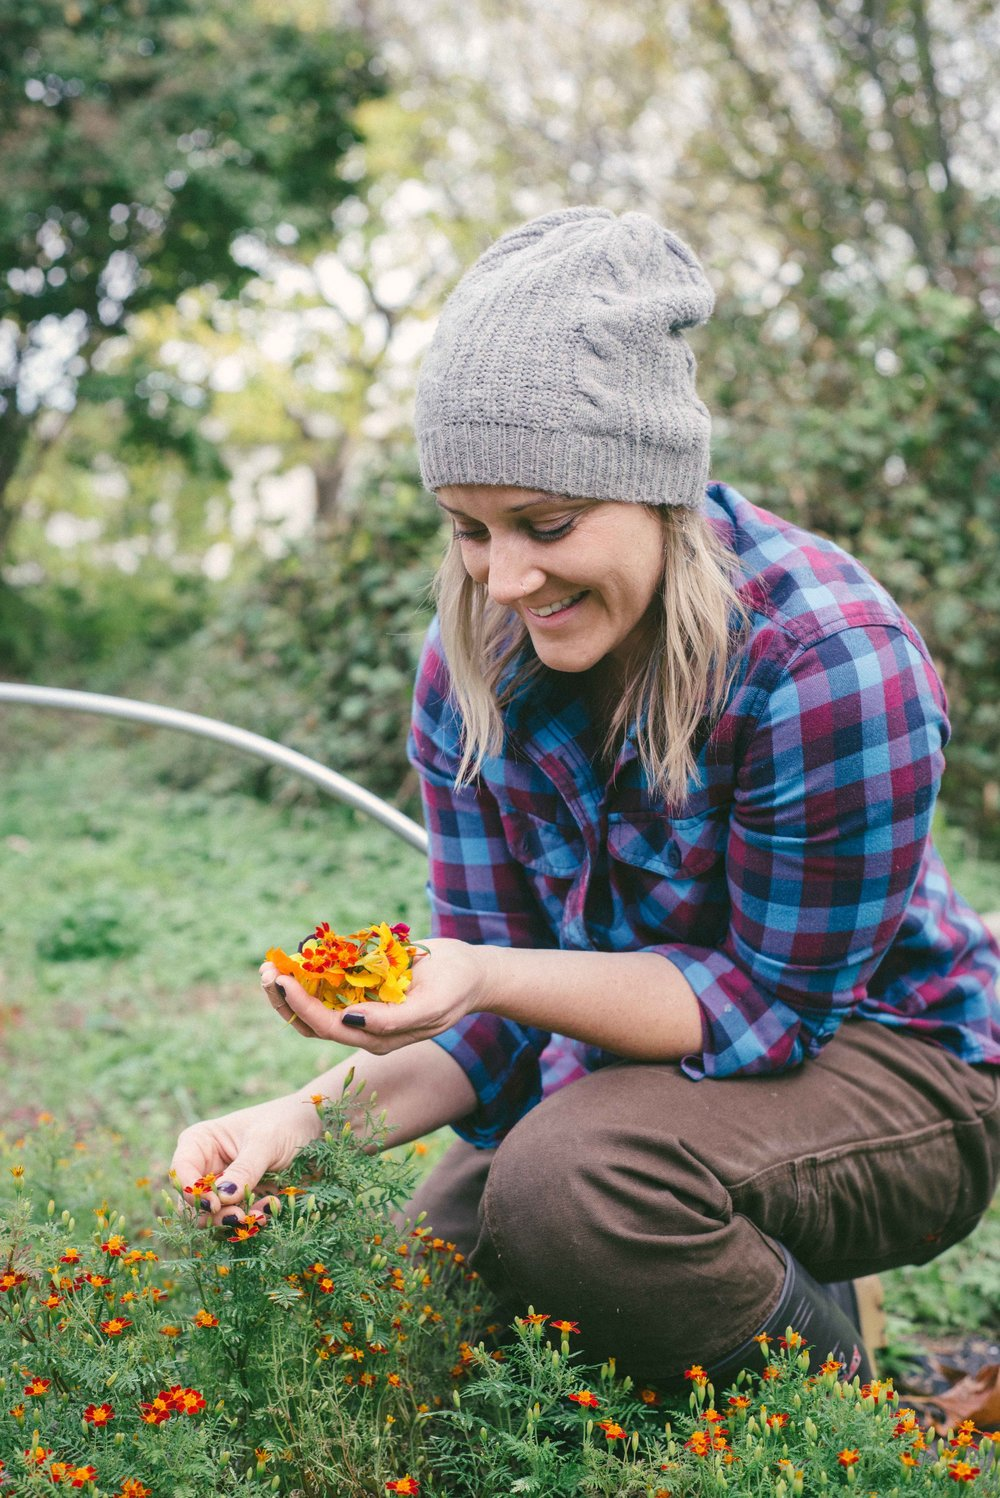 Mary, Founder (Right) harvesting gem marigolds at our outdoor plot in the Edgewood neighborhood of Washington D.C. Photo: Amber Breitenberg